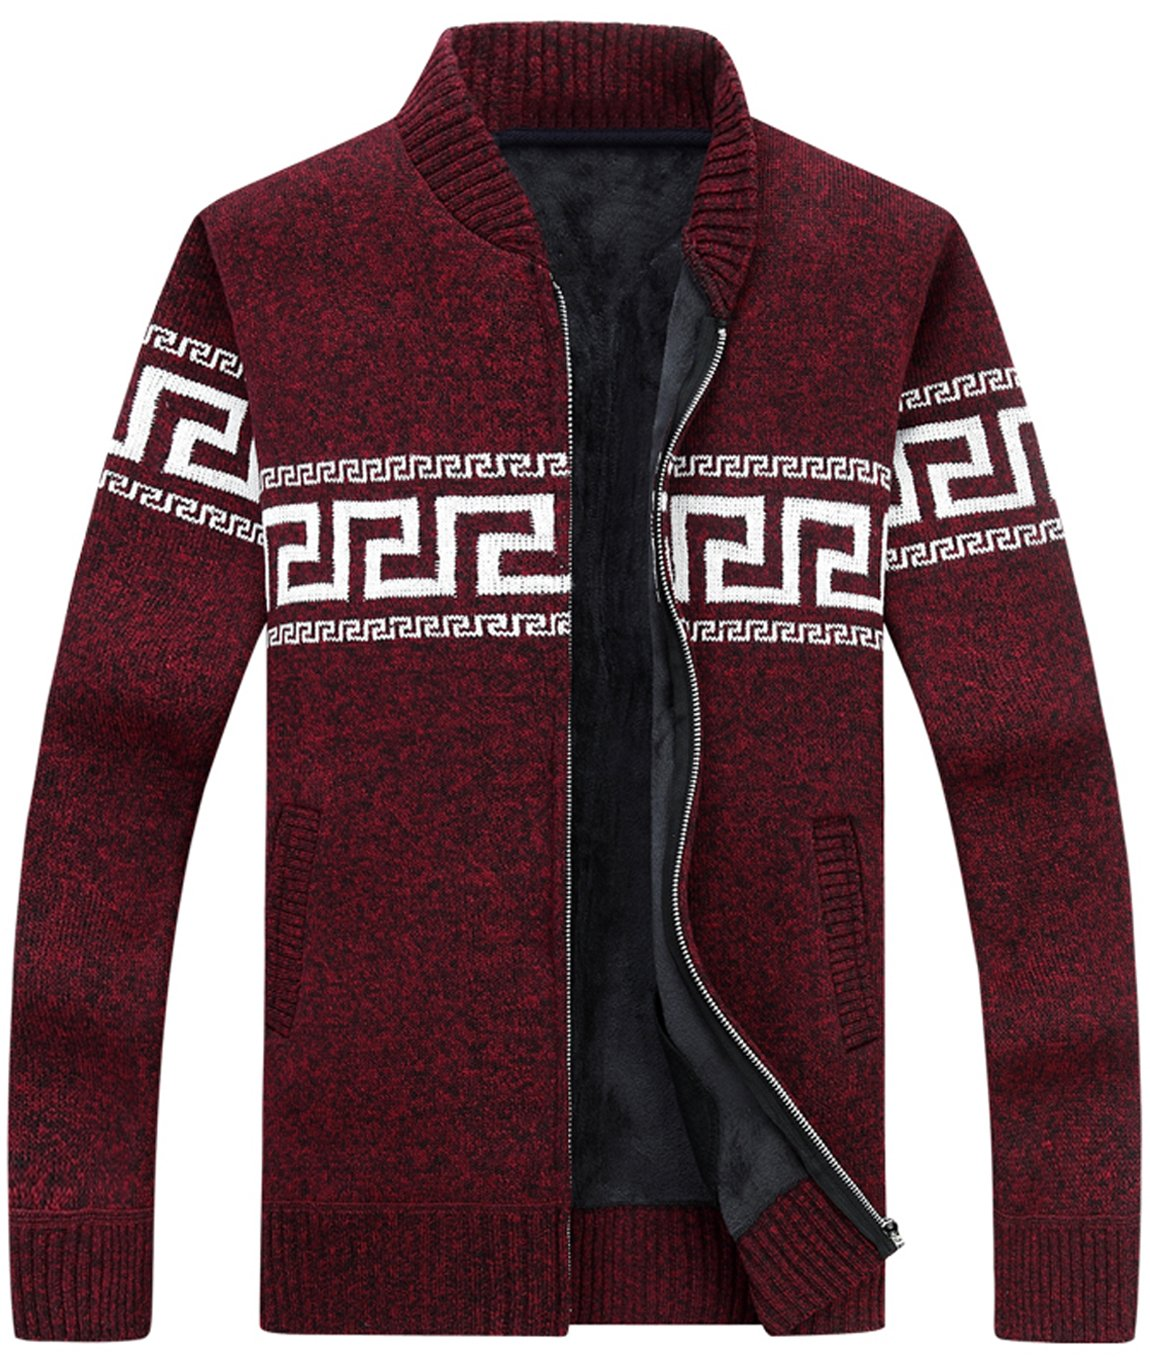 HOWON Men's Casual Thick Knitted Zipper Cardigan Sweater Red L